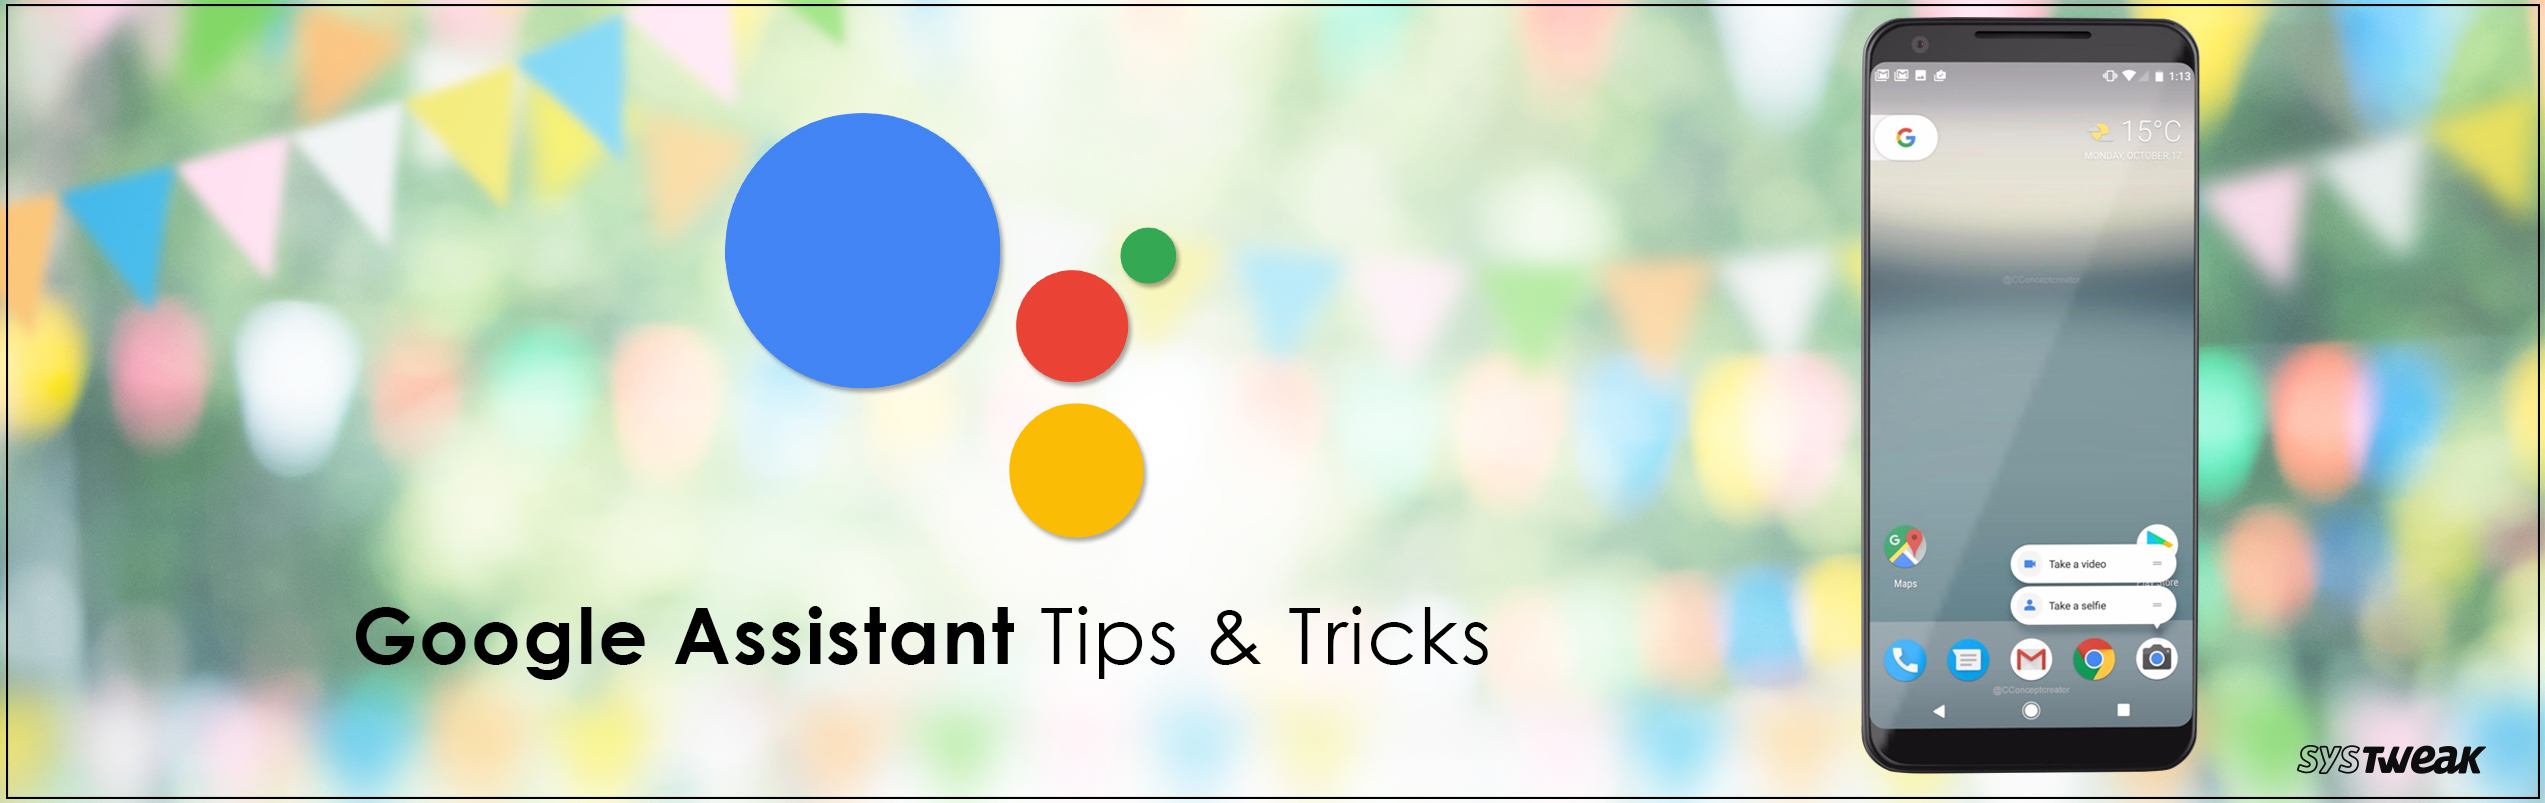 9 Google Assistant Tips and Tricks You Should Know About